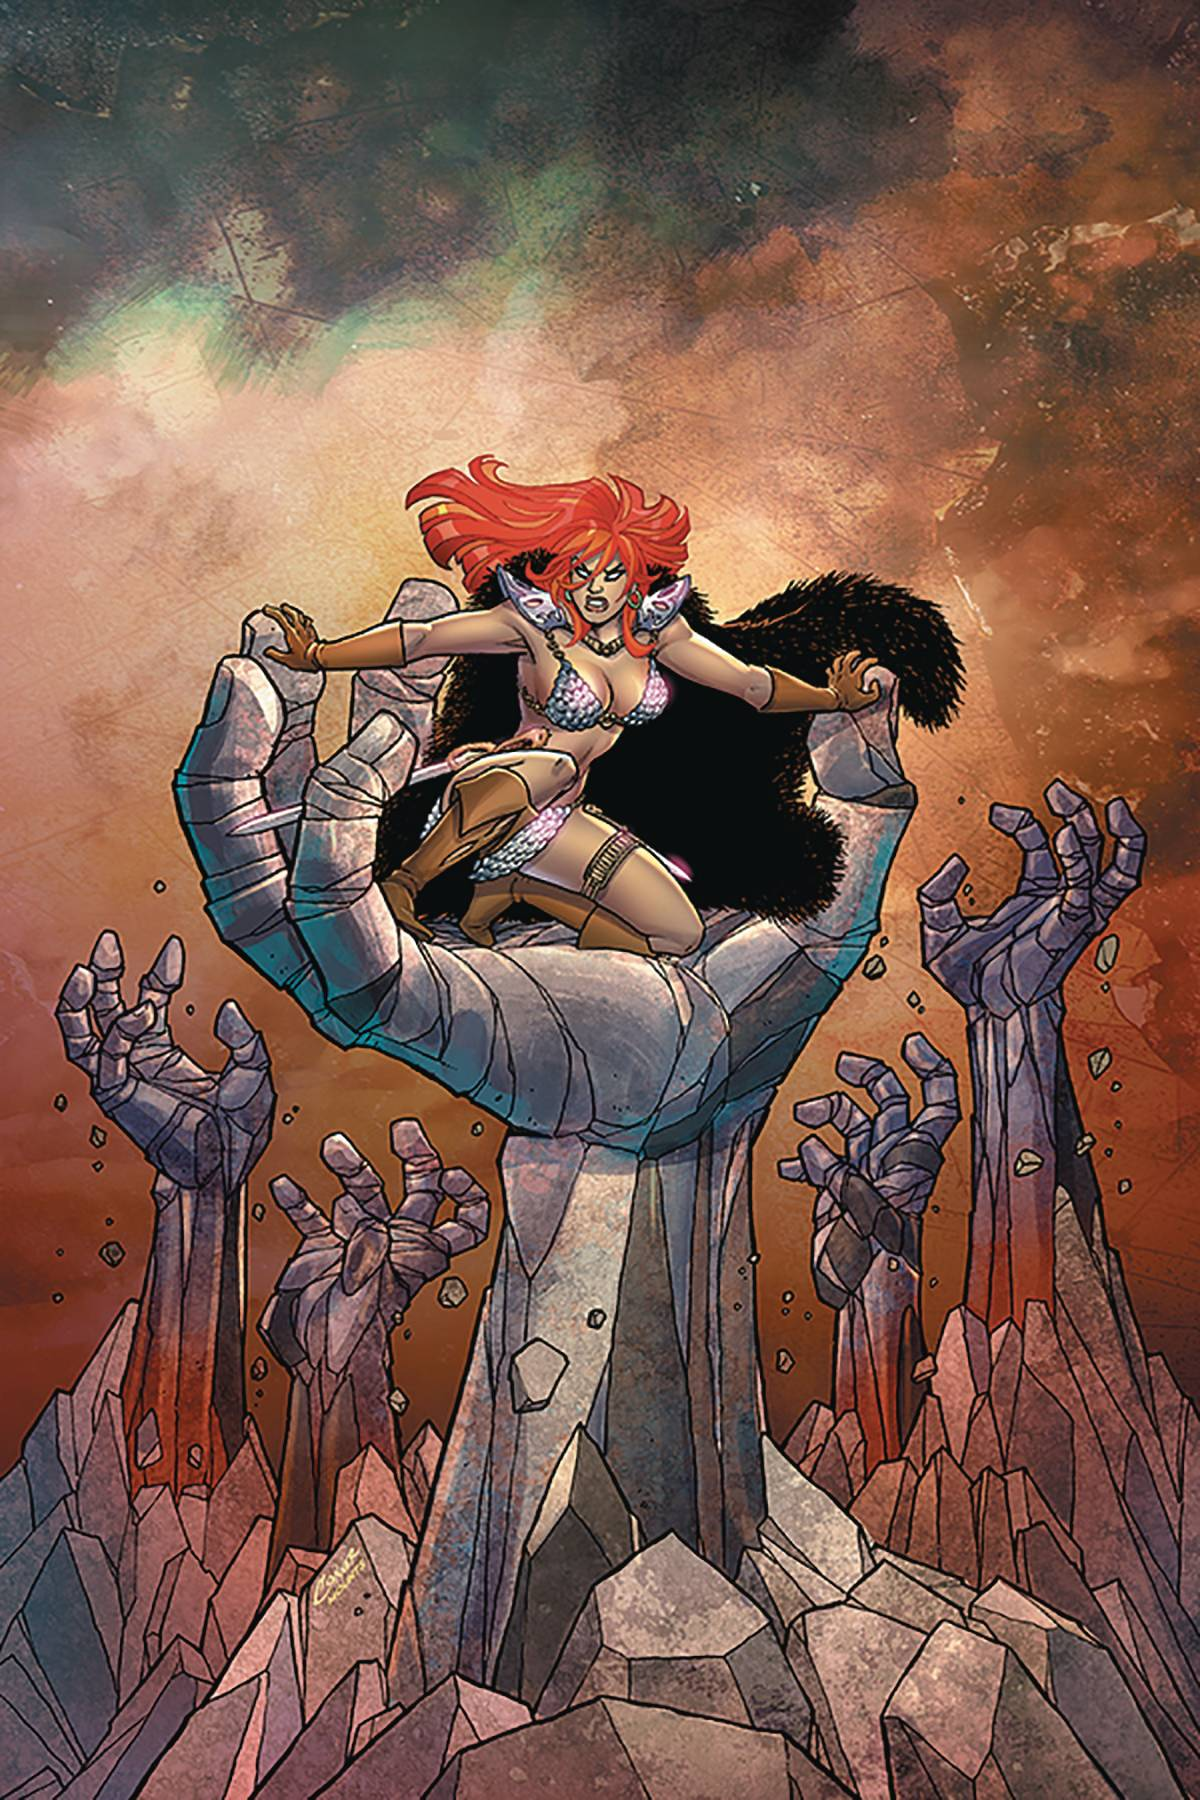 RED SONJA 9 CONNER VIRGIN CVR.jpg